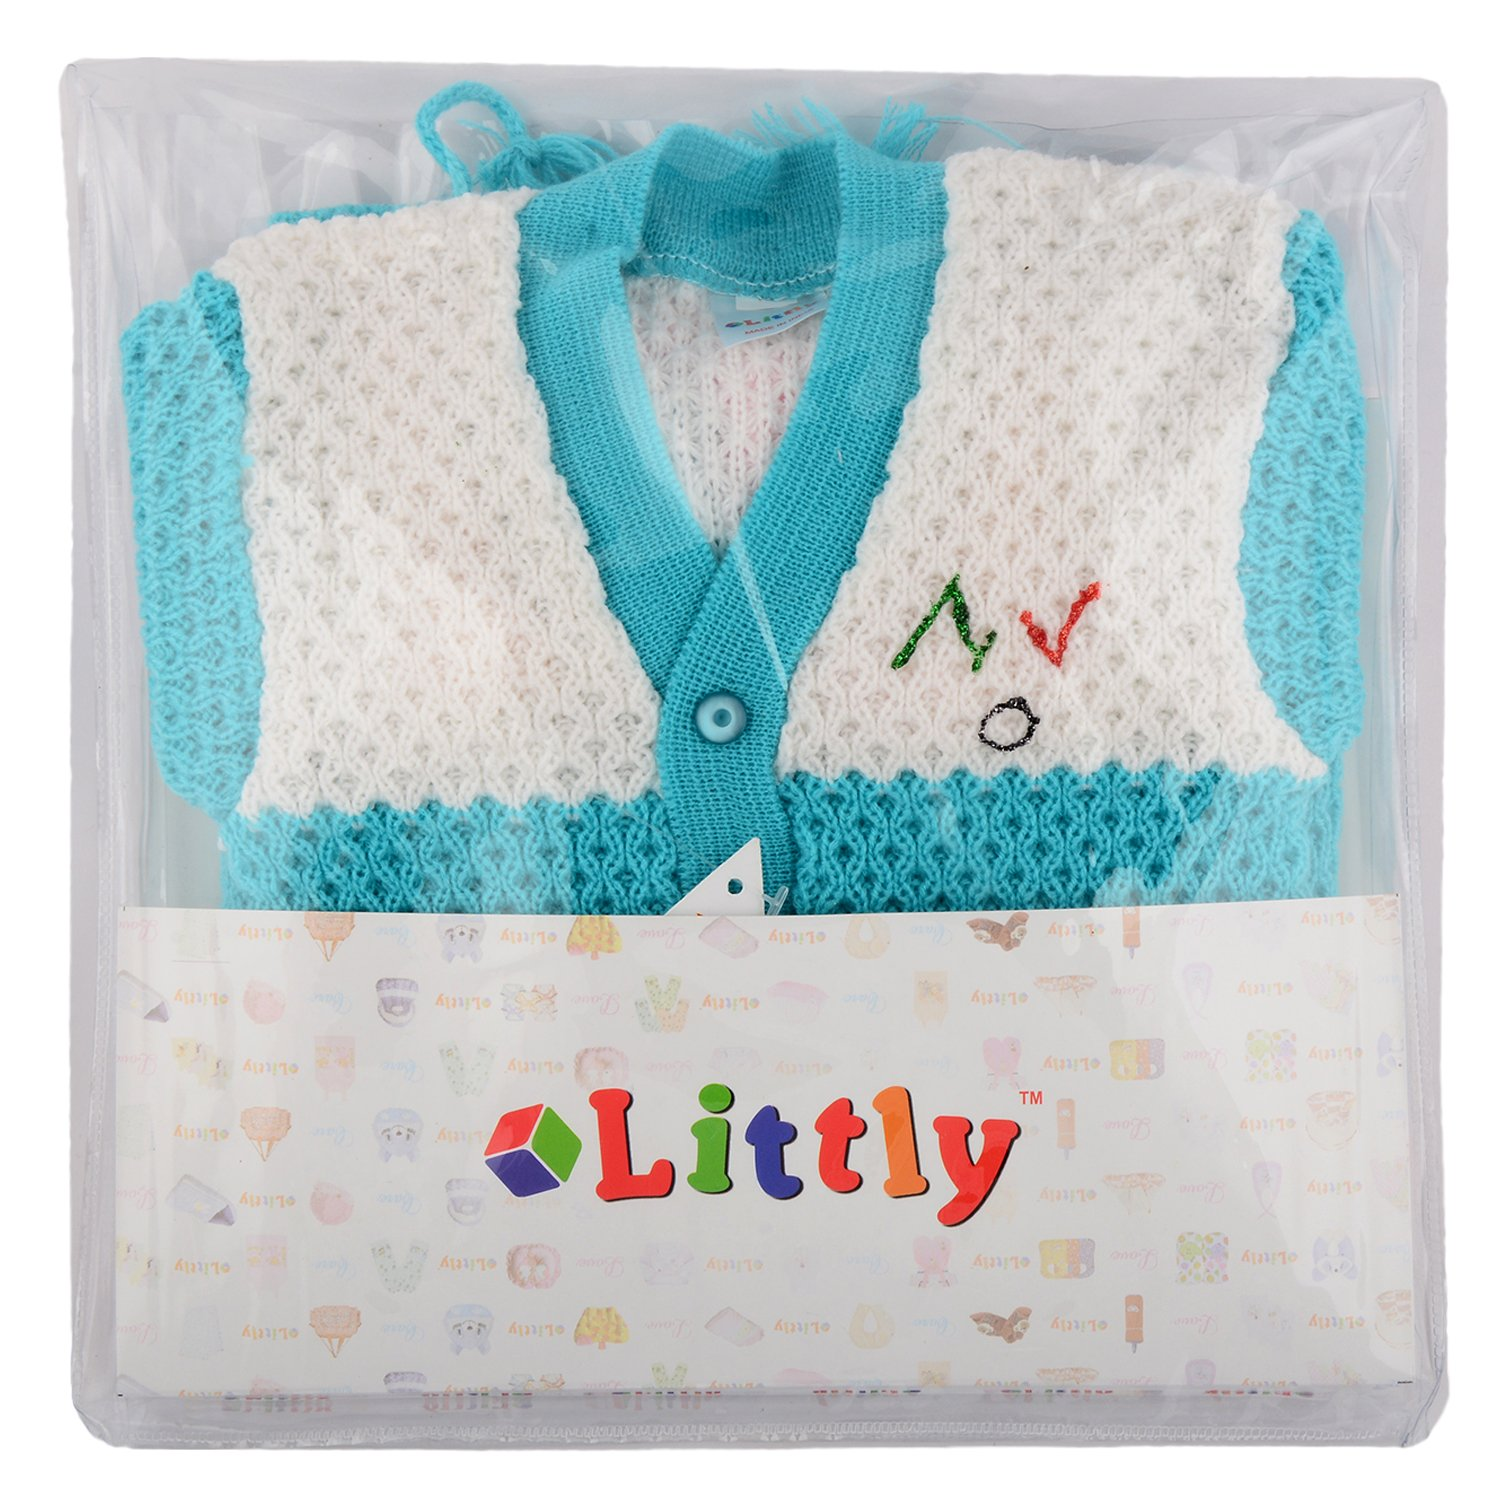 d94847024cc4 Littly Woollen Knitted Front Open Baby Suit (4 pc)  Amazon.in ...